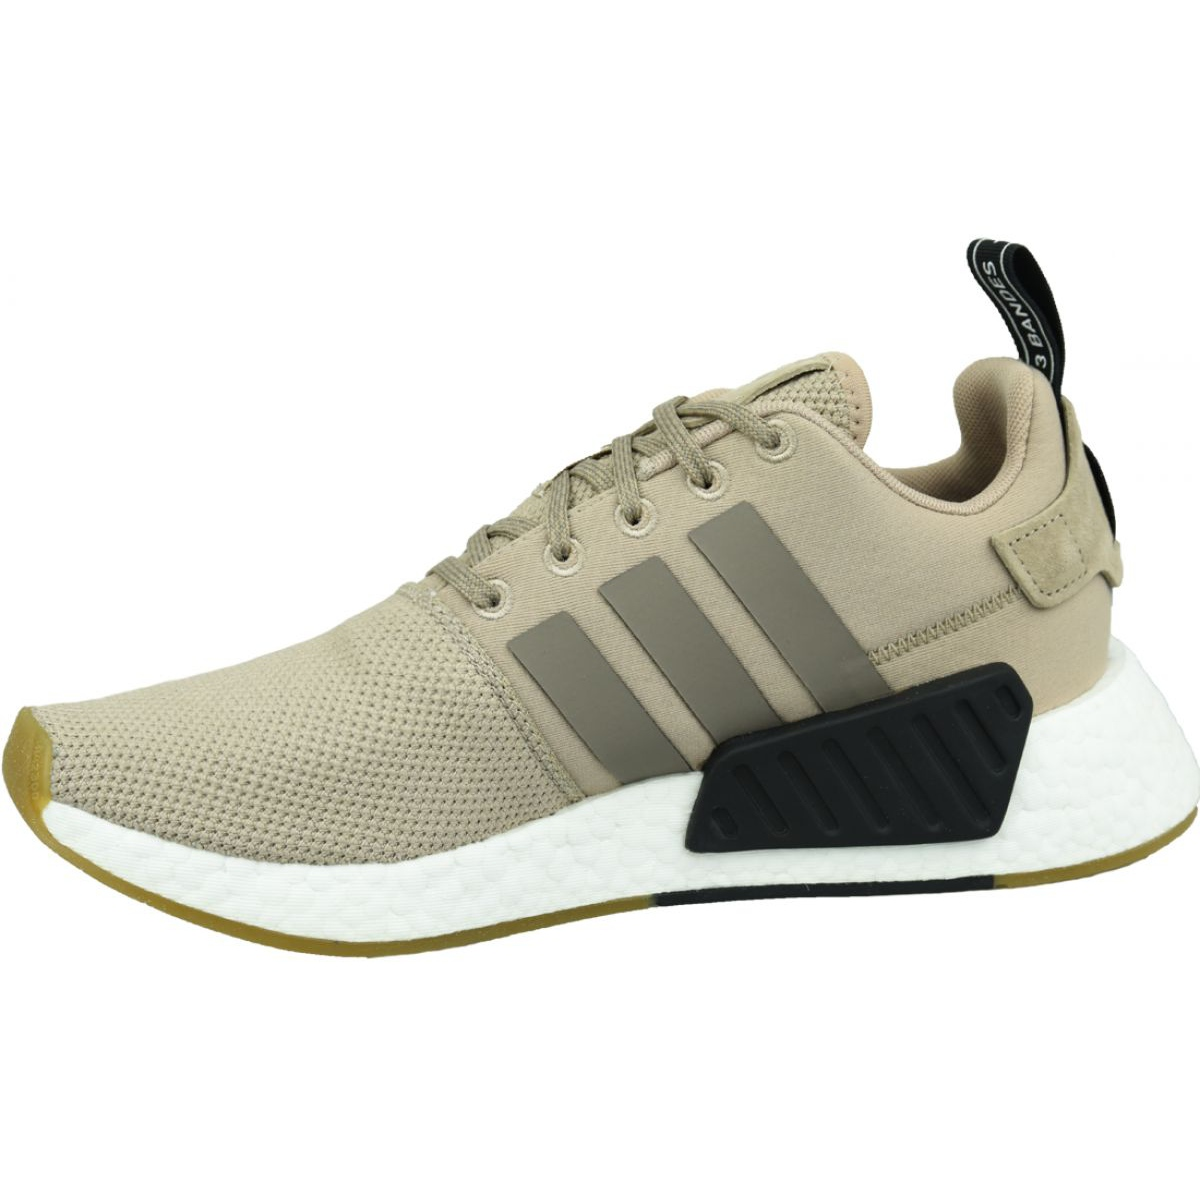 Adidas NMD R2 M BY9916 shoes beige